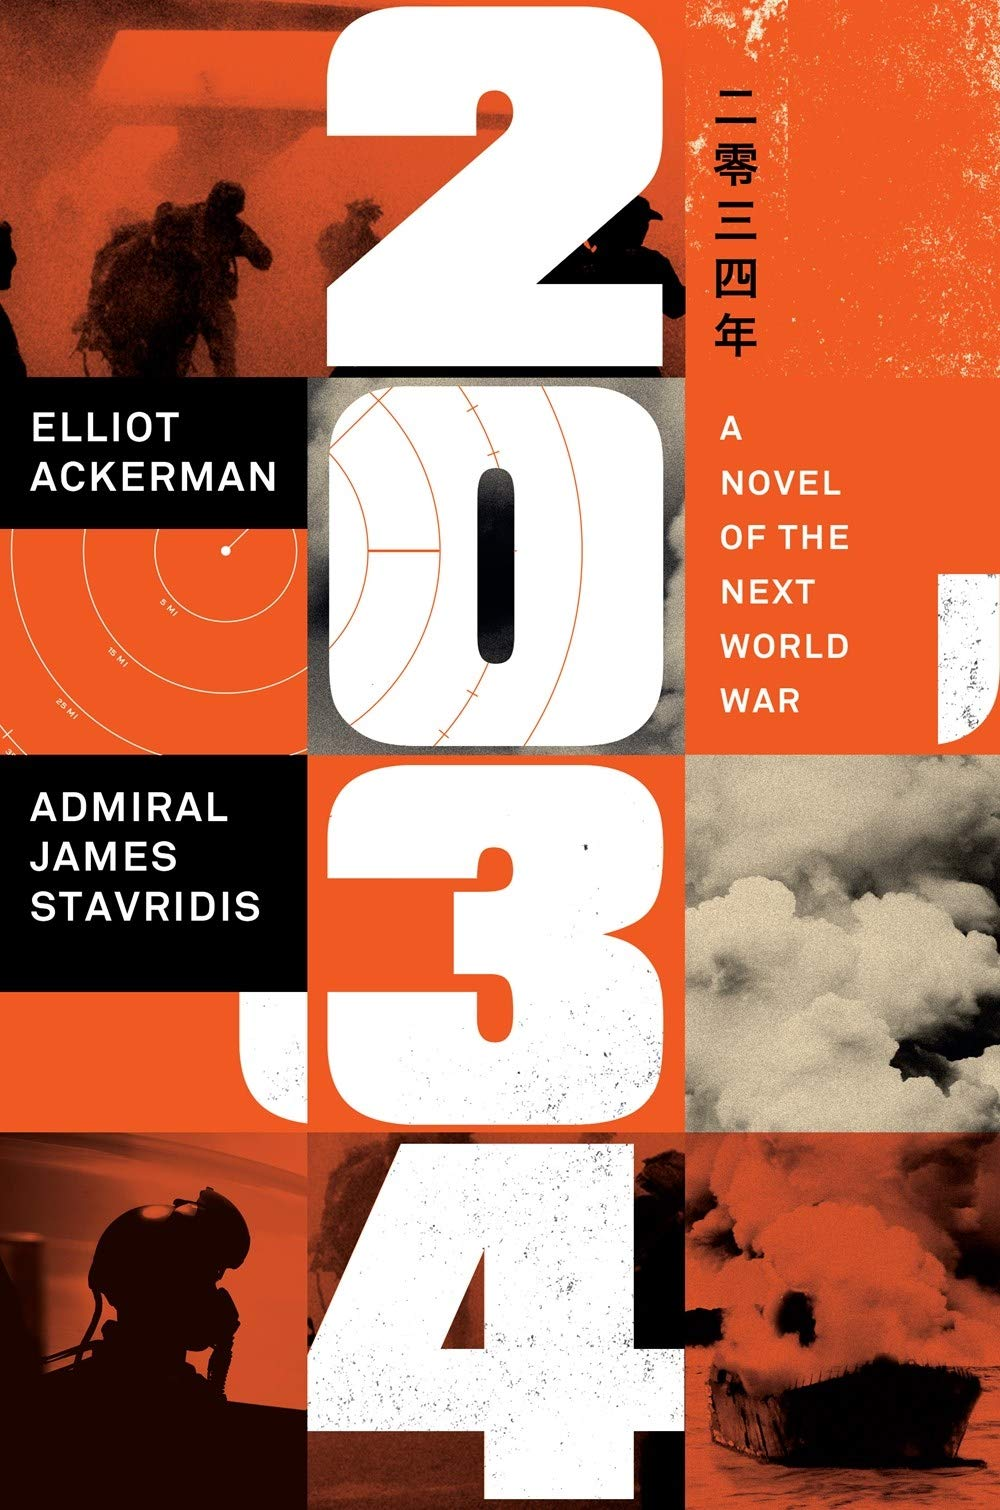 2034: A Novel of the Next World War